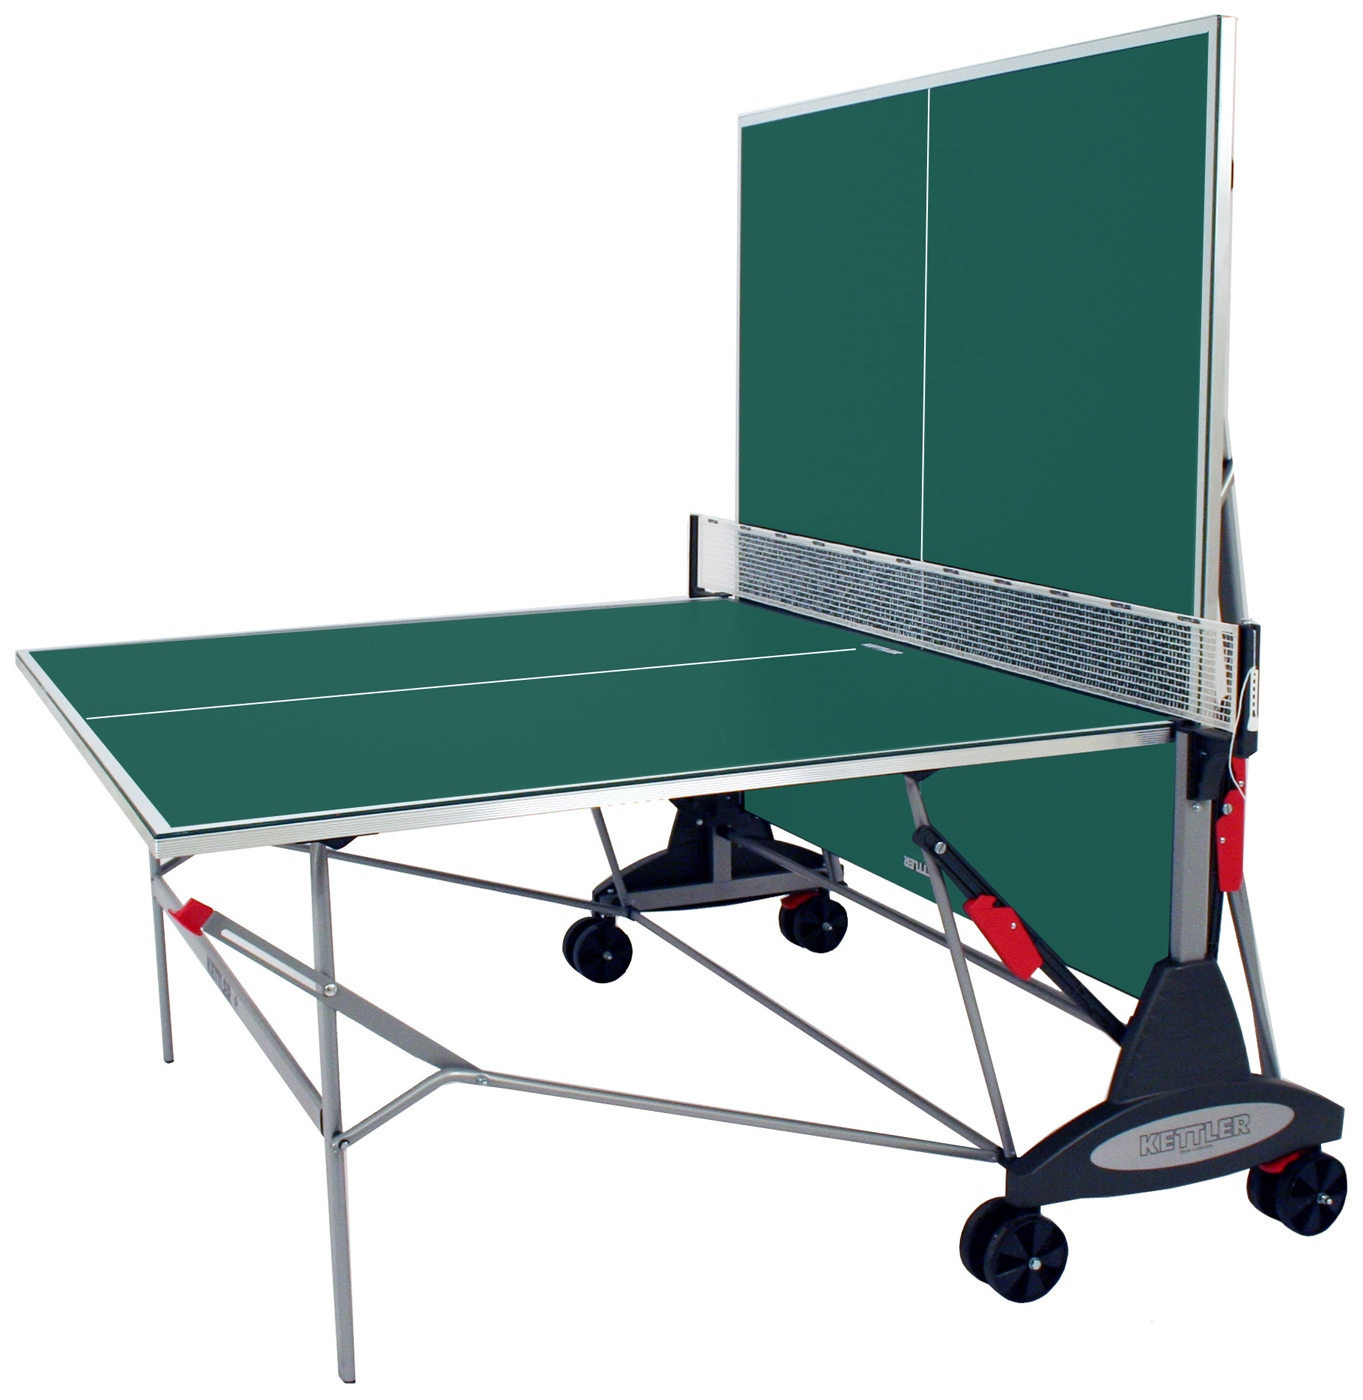 Kettler stockholm gt indoor ping pong table - Table ping pong prix ...